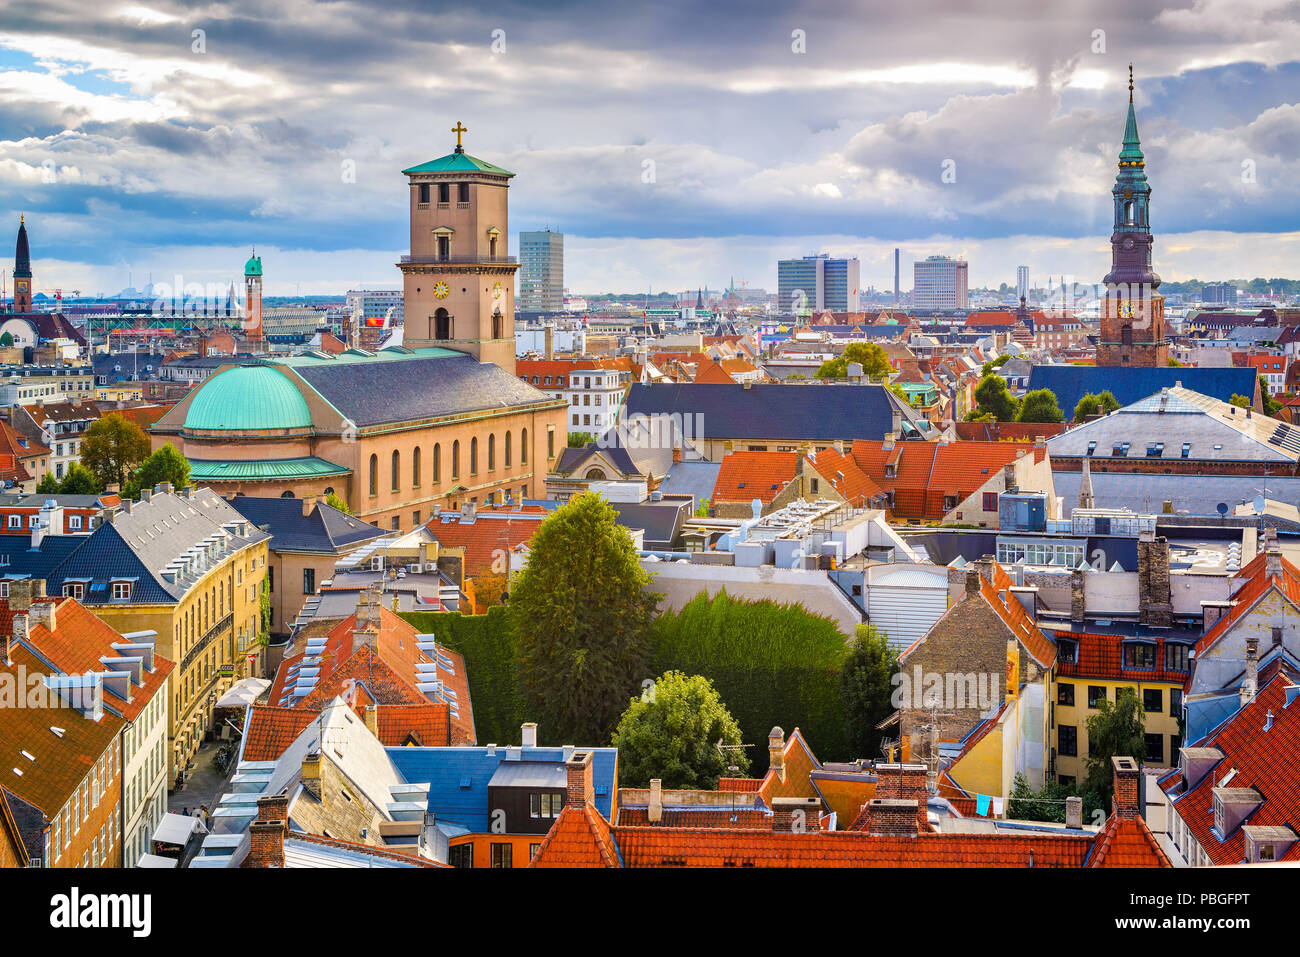 Copenhagen, Denmark old city skyline. - Stock Image